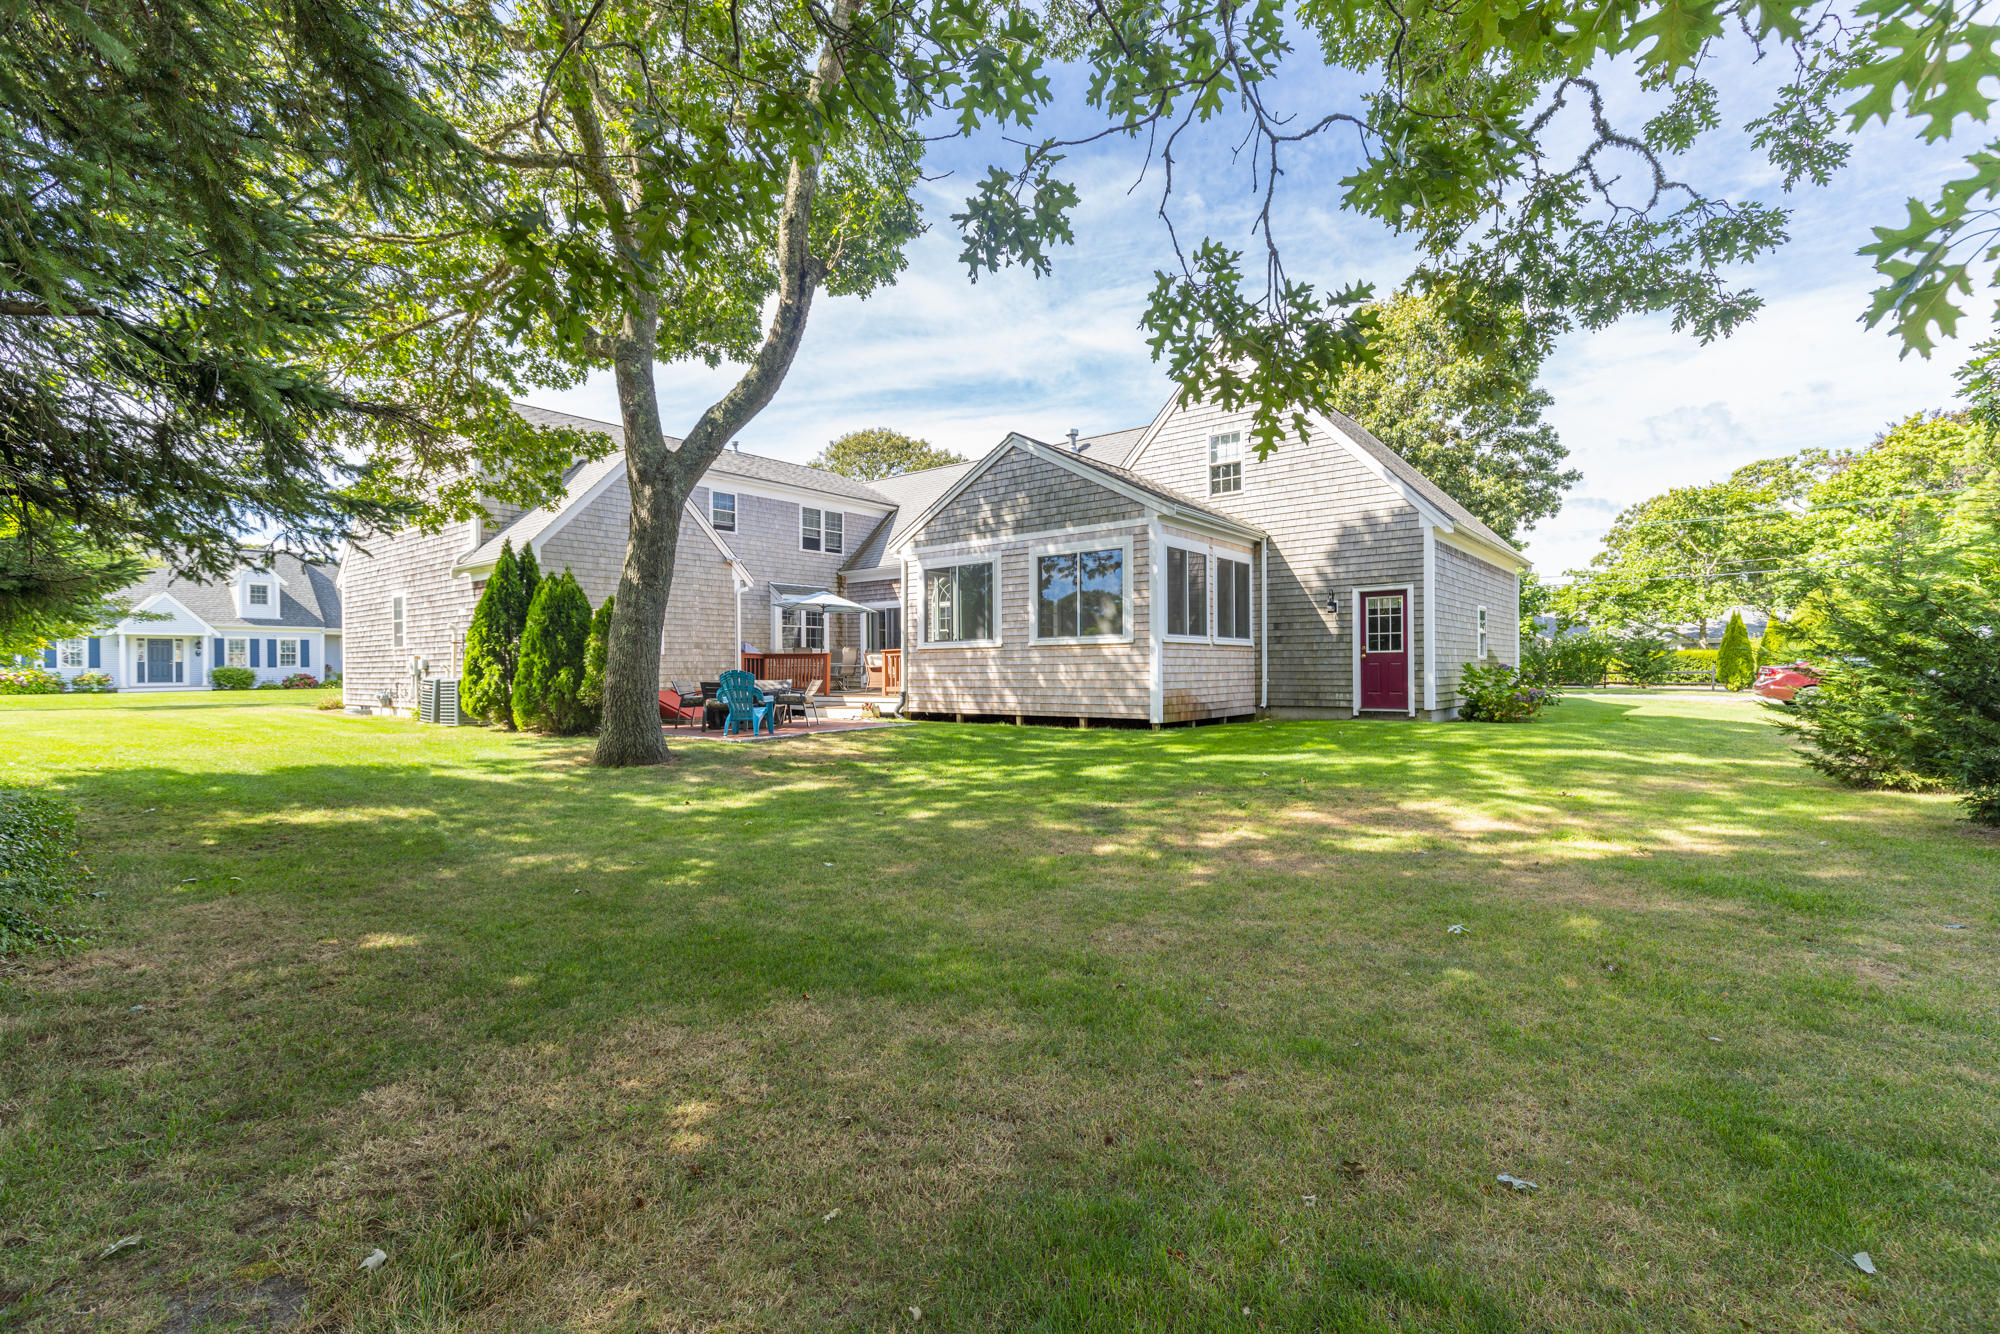 3 Nellies Way, Chatham, MA  02633 - slide 4